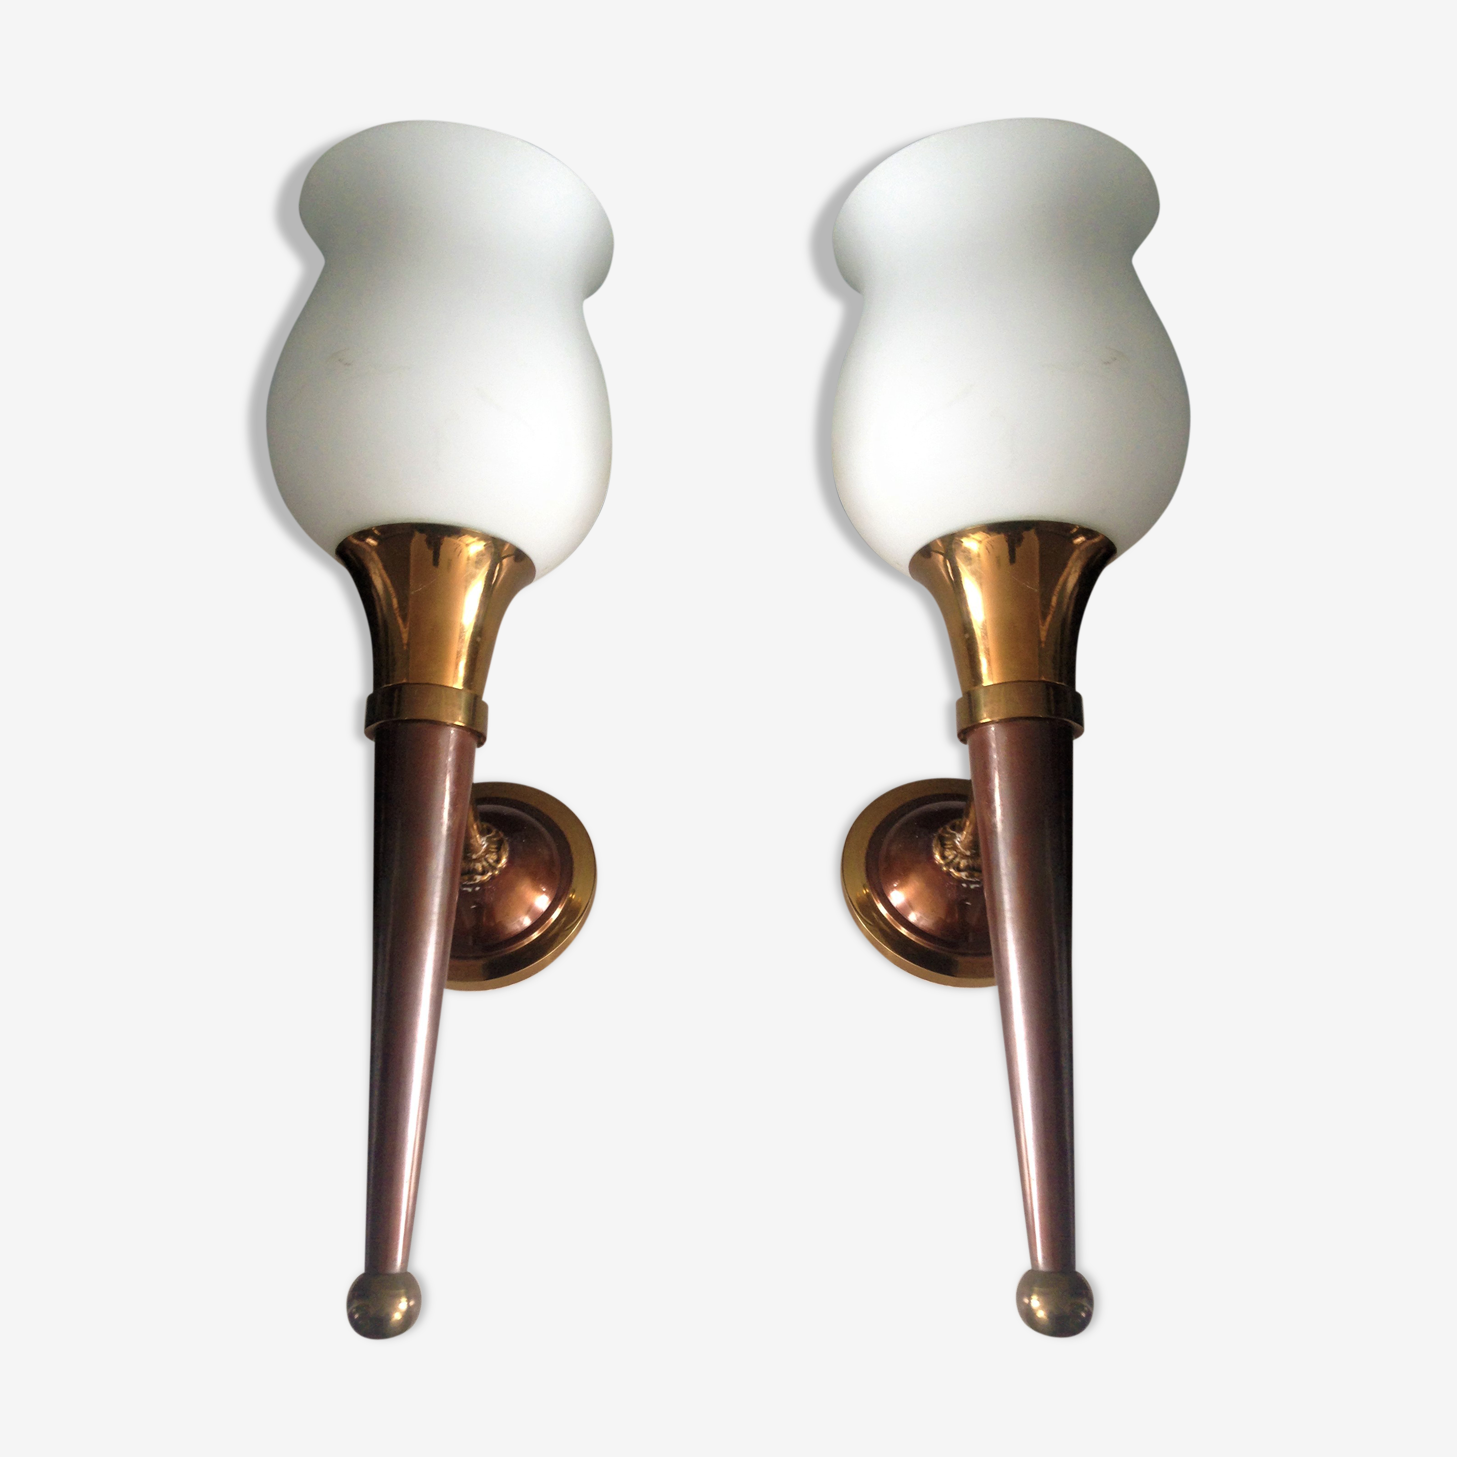 Pair of torch wall lamps